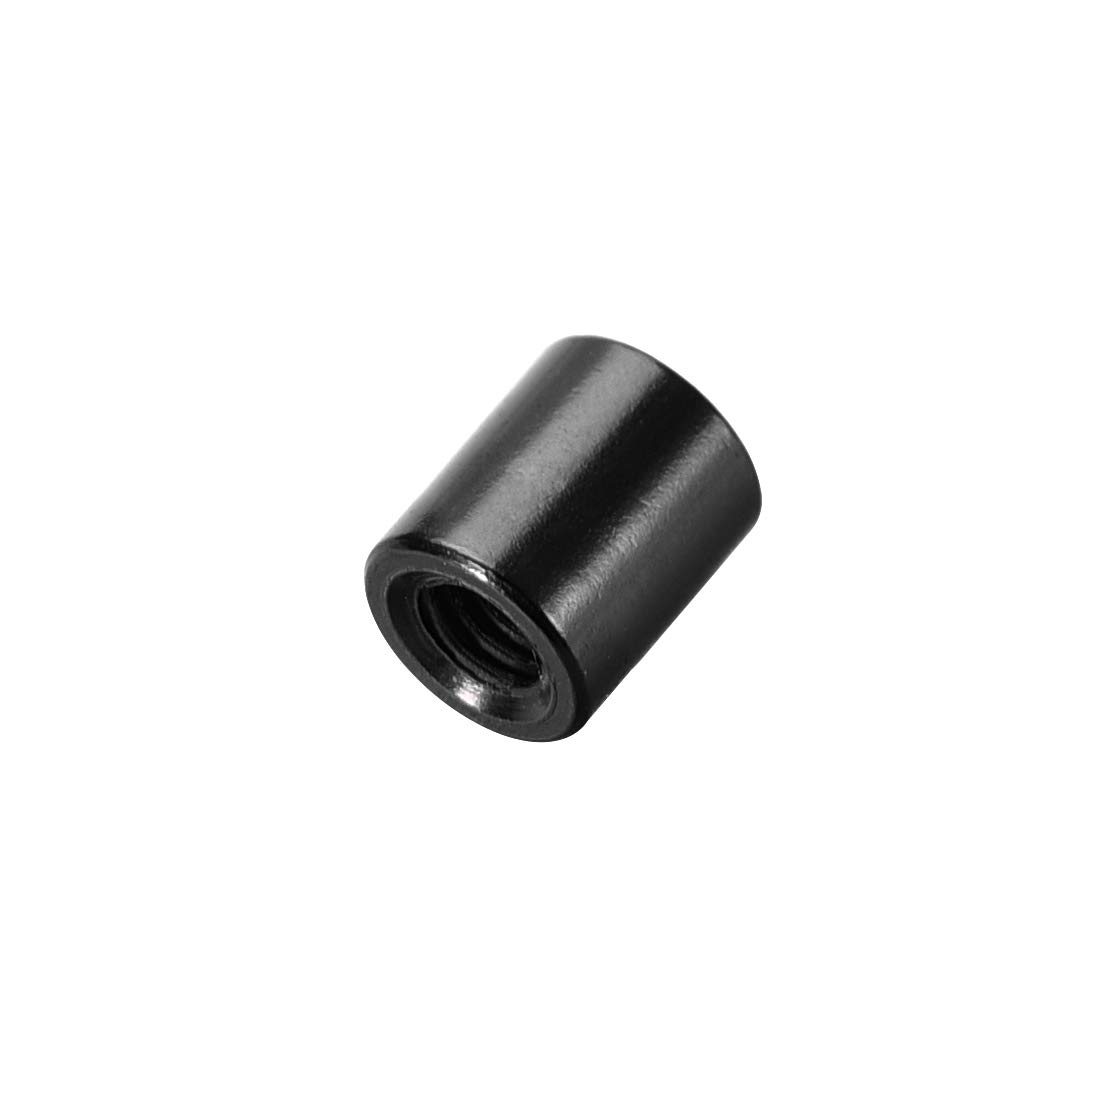 uxcell 15 Pcs M3x10mm Round Aluminum Standoff Column Spacer Female for Drone FPV Quadcopter Racing RC Multirotors Parts DIY